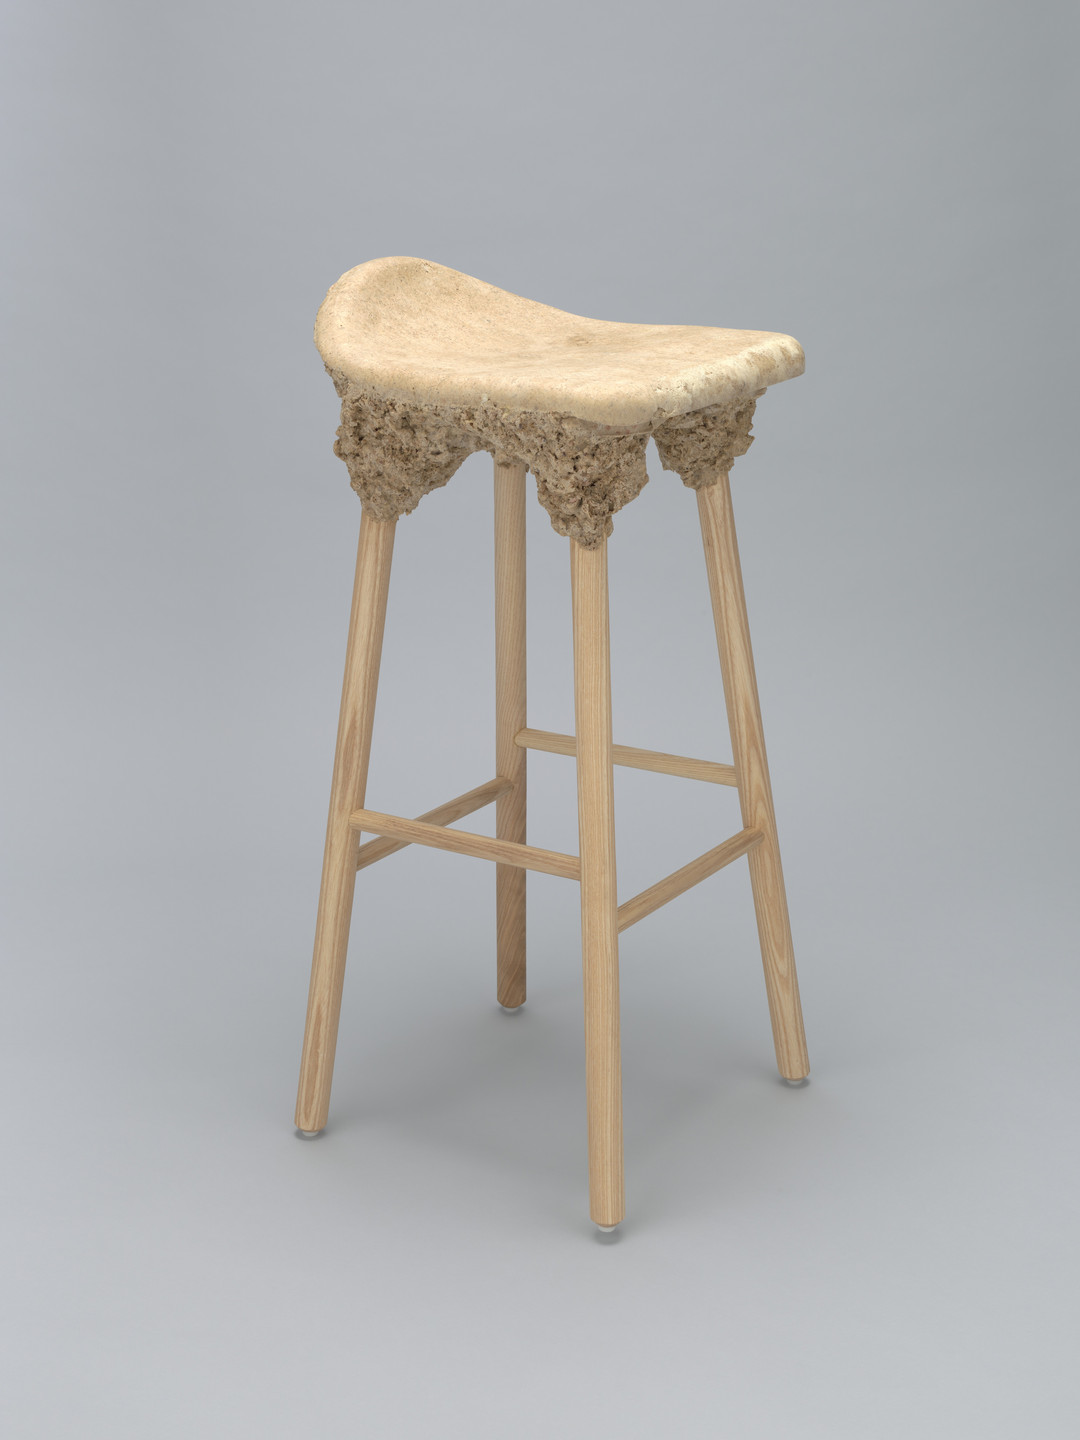 Marjan van Aubel, James Shaw. Well Proven Stool. 2014